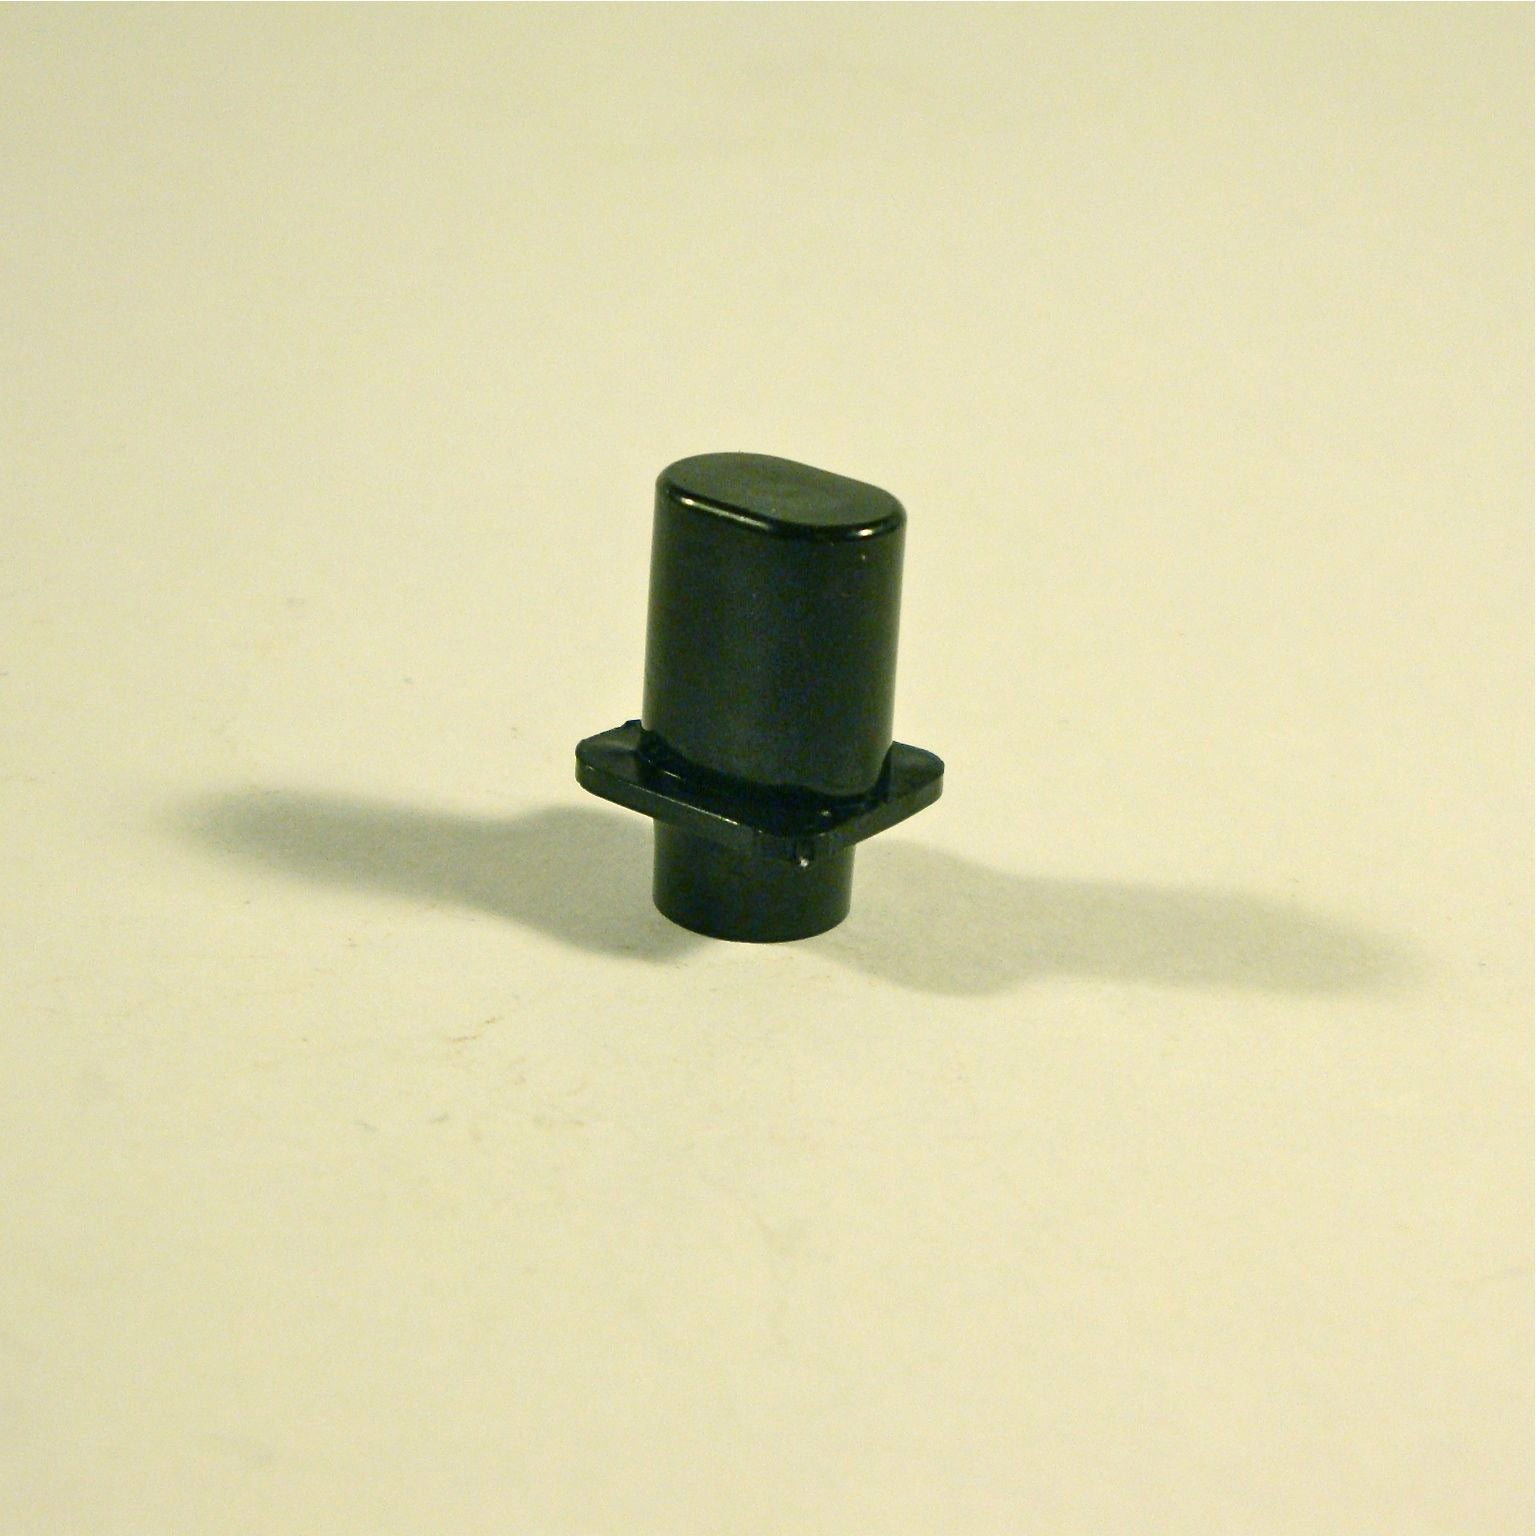 Switch cap for Telecaster, top hat model